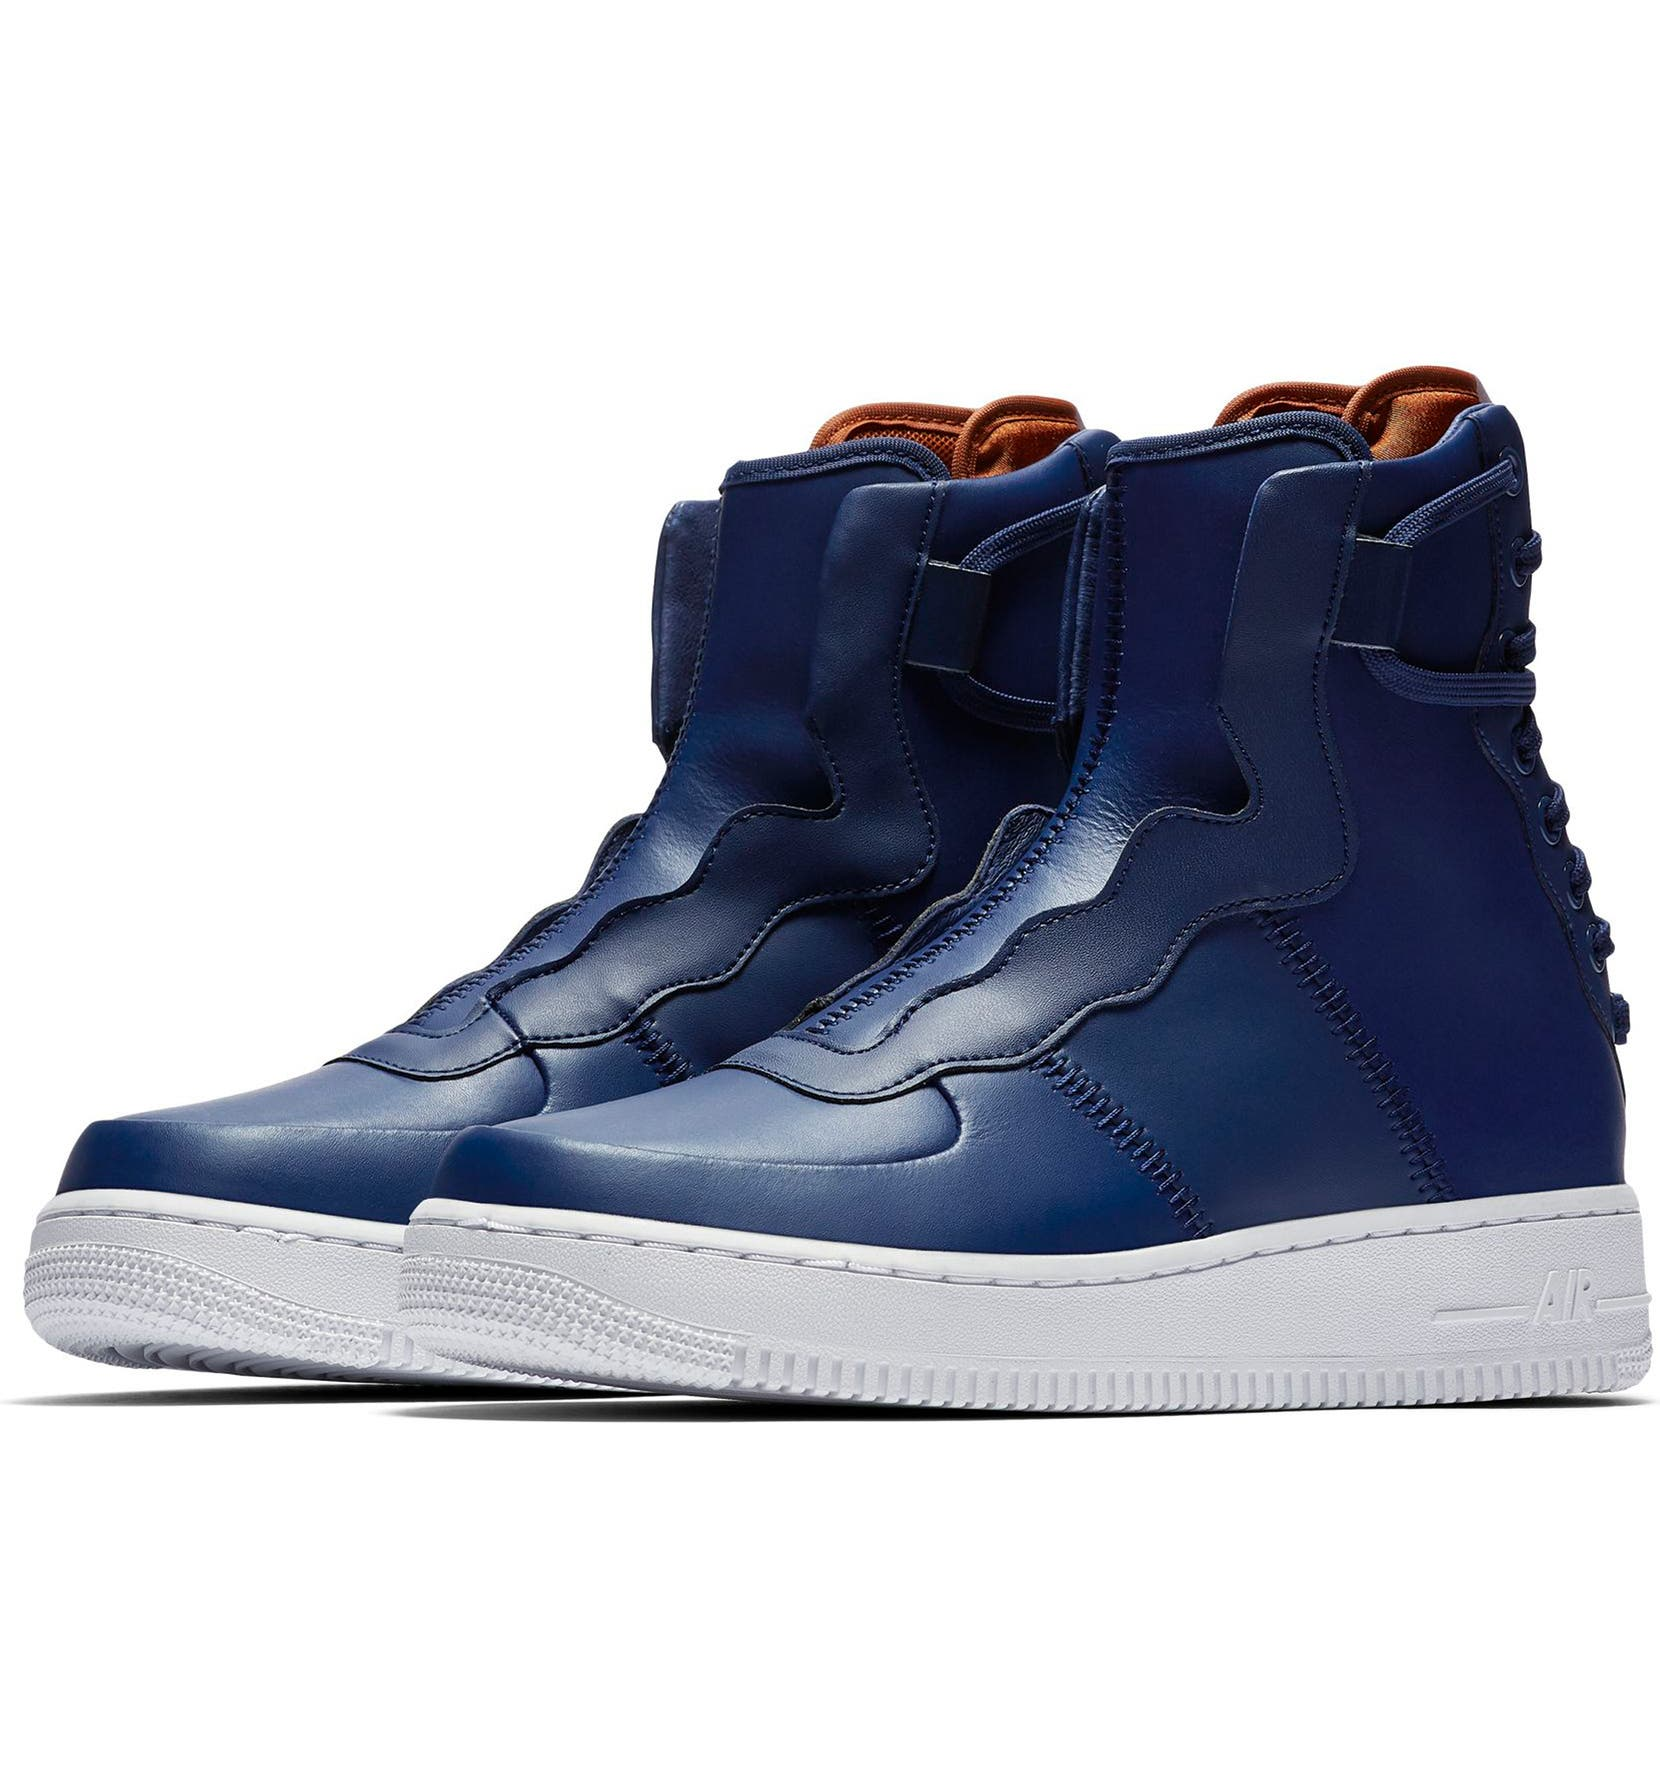 90d63fd0eb46 Nike Air Force 1 Rebel XX High Top Sneaker (Women)